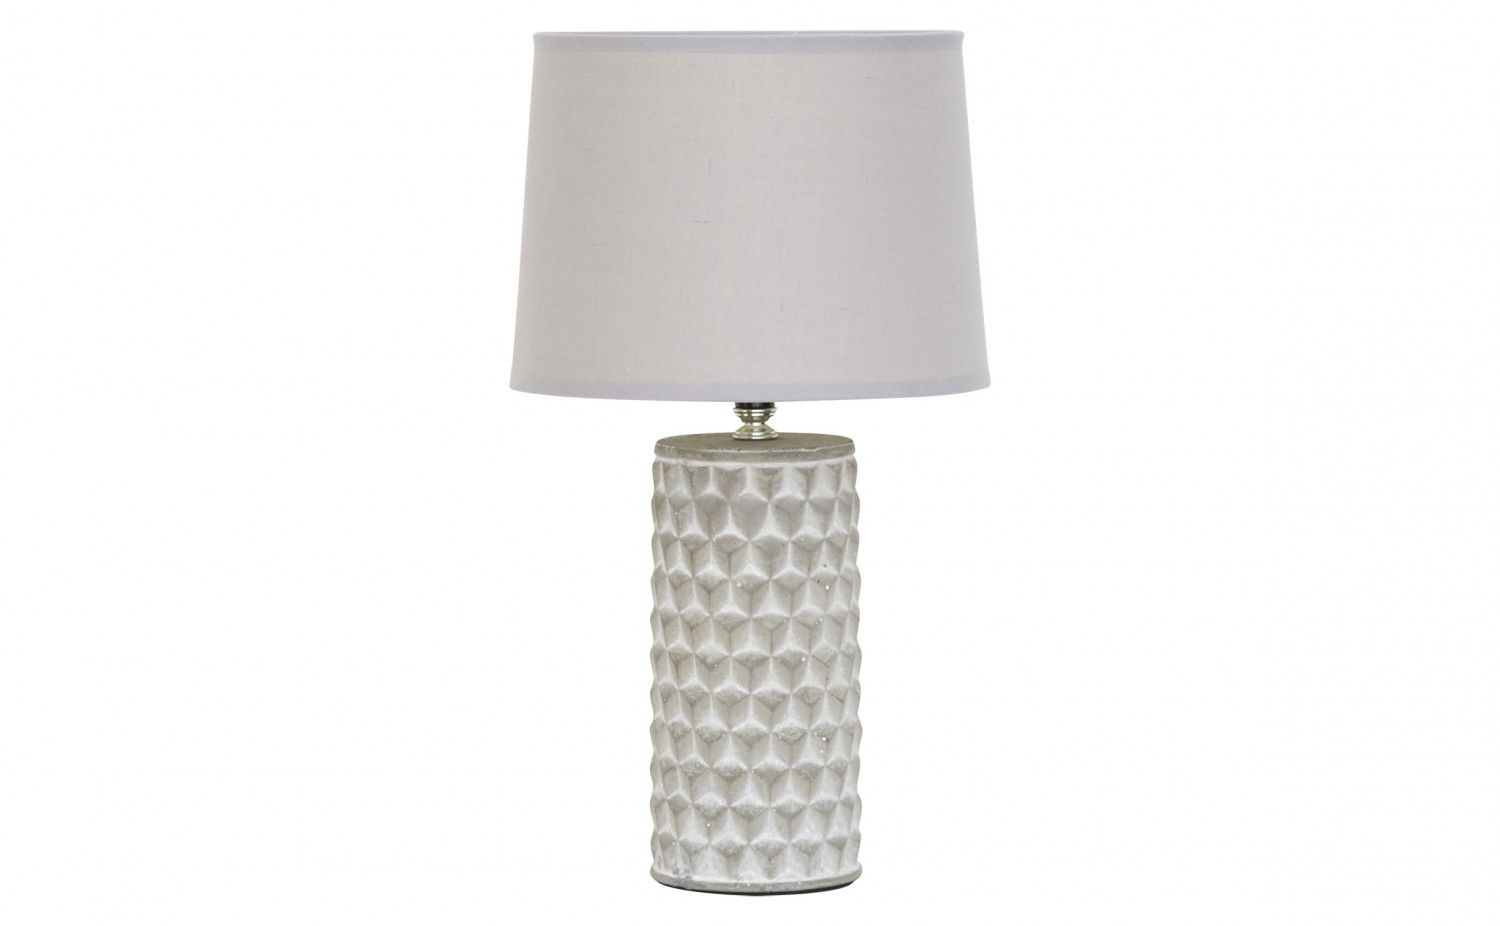 Cement Mini Lamp With Grey Shade Table Lamps